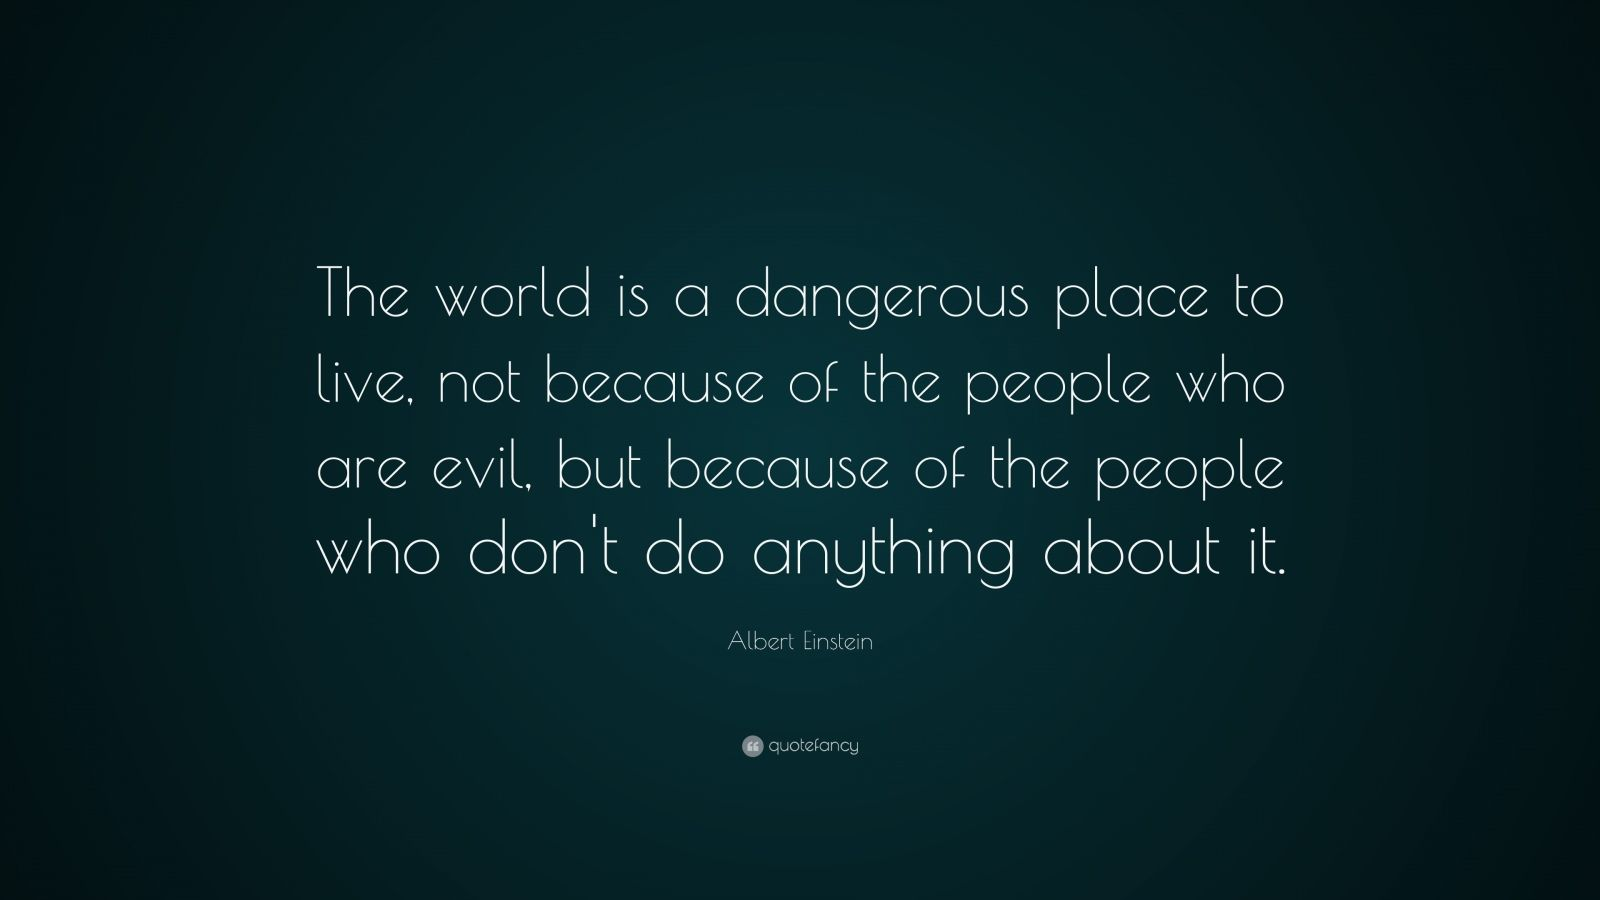 the world is a dangerous place to live in essay Canada is not known for being a dangerous place in fact, it is one of the safest countries in the world while the most dangerous country on earth, el salvador, has a murder rate of 8284 per 100,000 people, canada has a murder rate of 168 per 100,000 people, among the lowest on the planet.